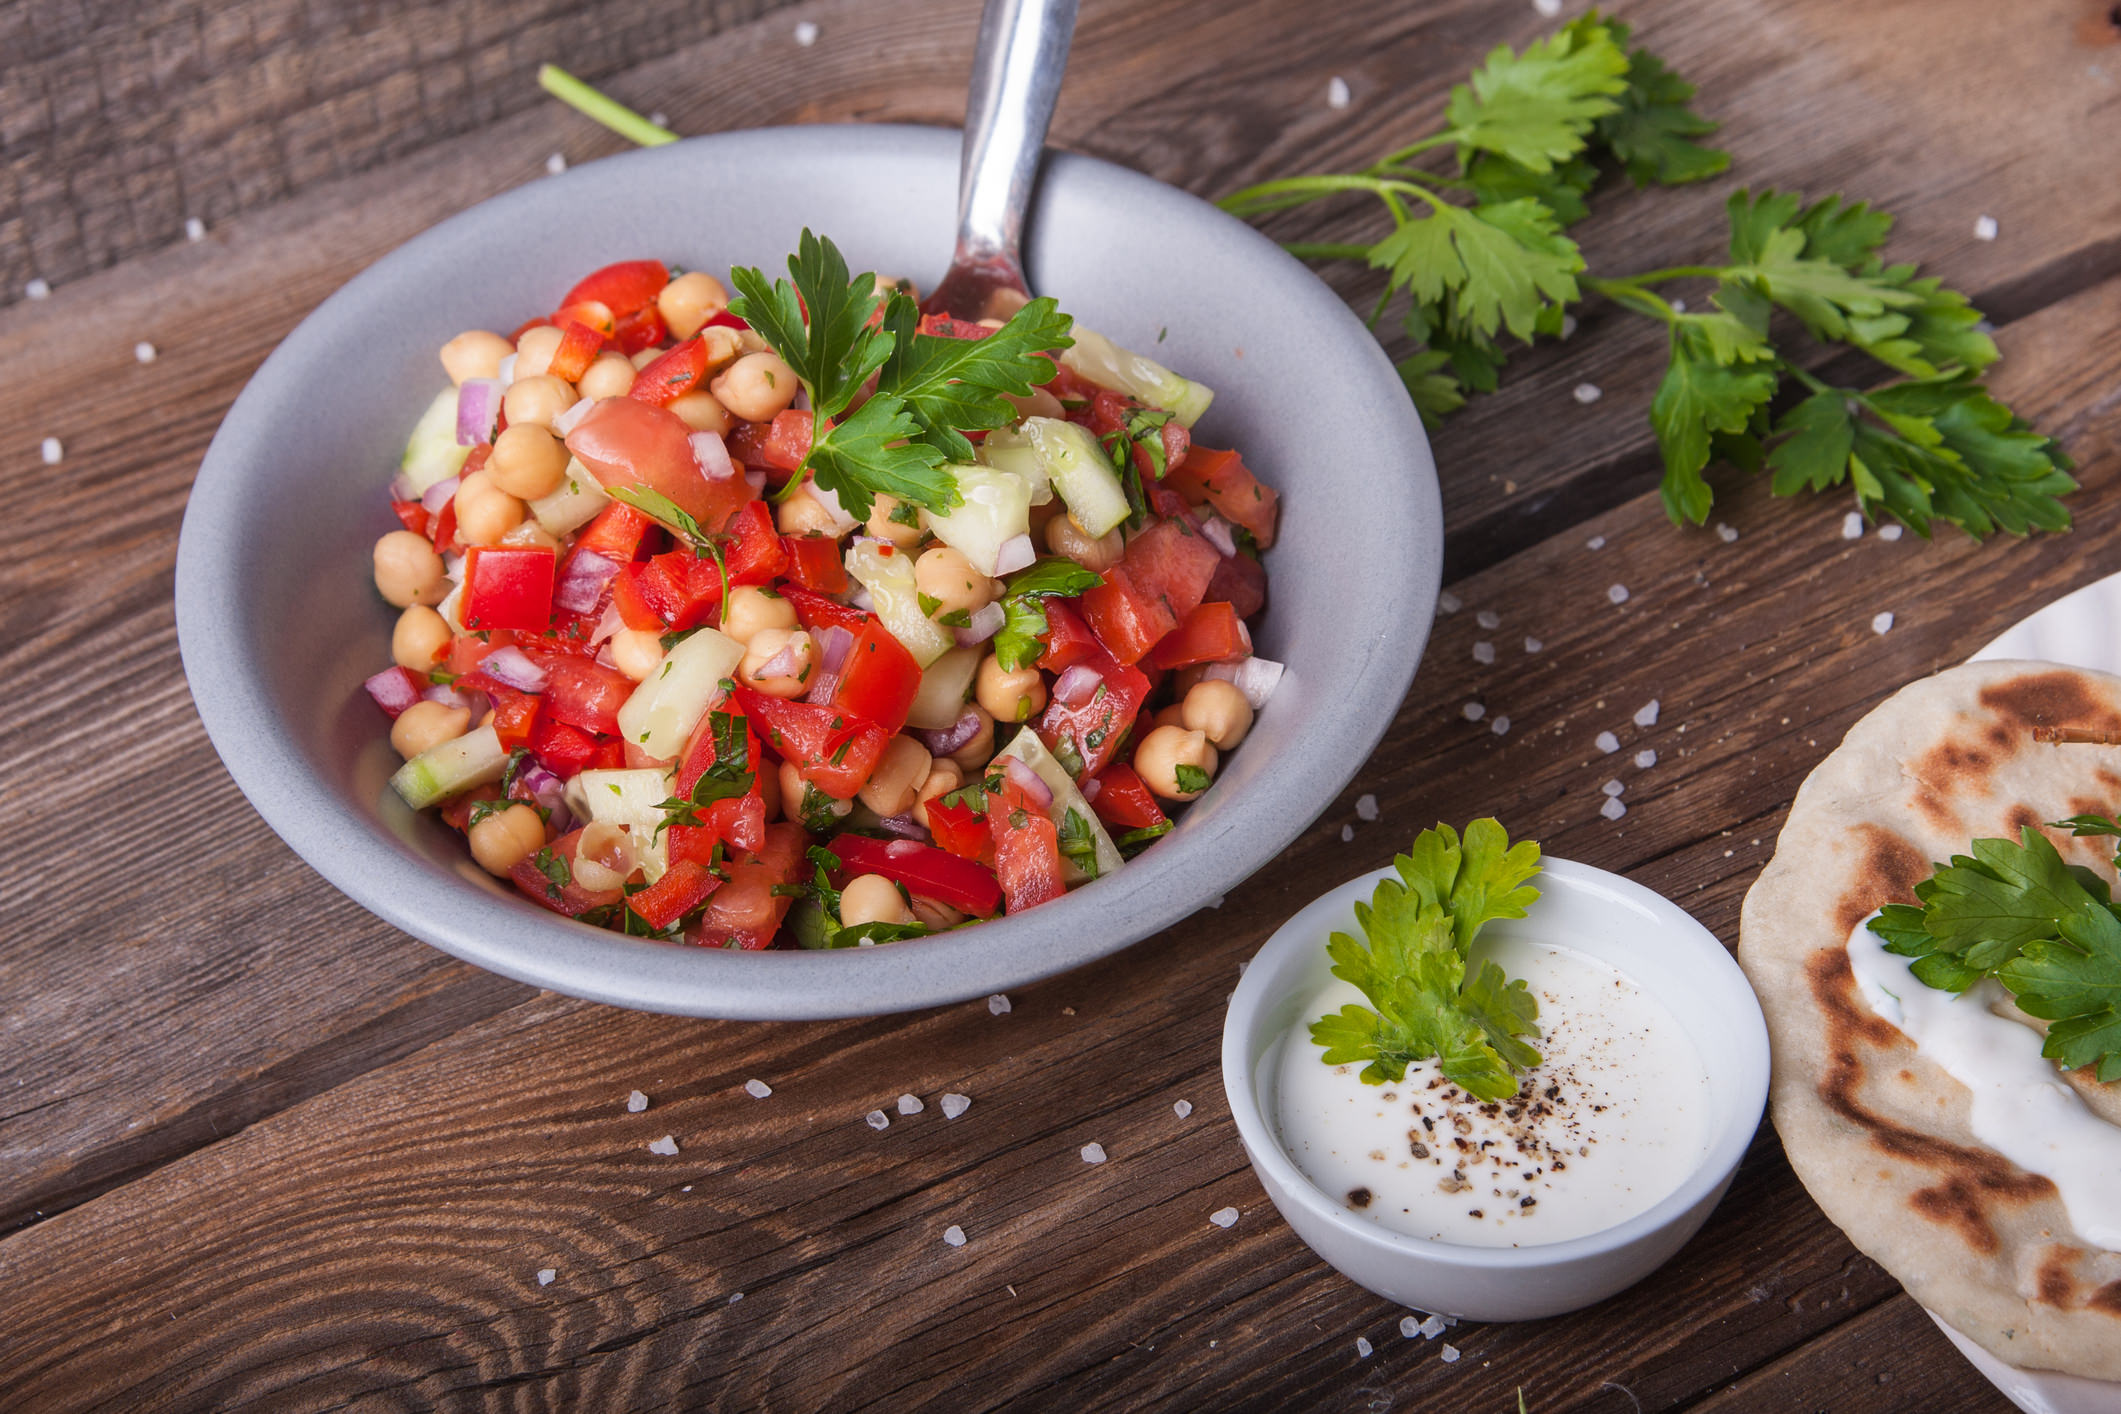 Recipe for Greek Style Chickpea Salad